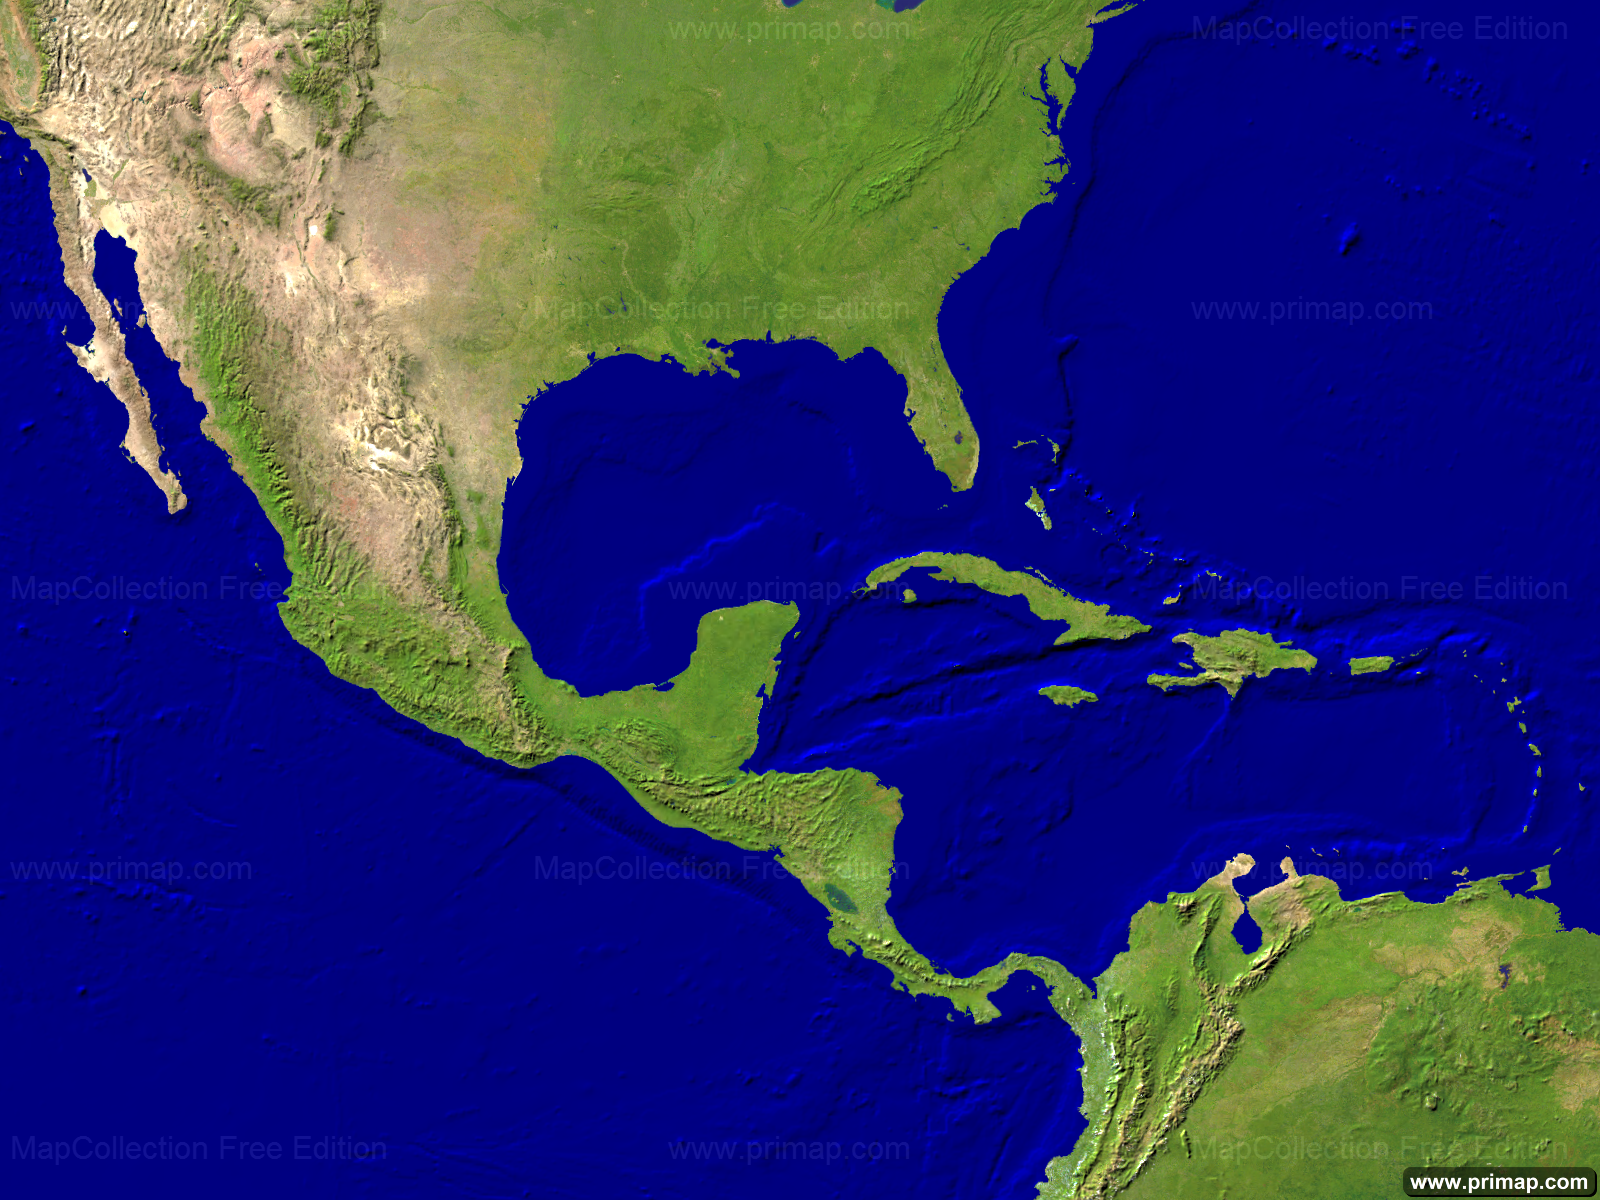 primap Continental maps on geographic map of central america, map map of central america, road map of central america, printable map of central america, world map of central america, satellite view of north america, weather channel central america, political map of central and south america, world atlas of central america, precipitation map of central america, elevation of central america, google earth of central america, detailed map of central america, google map of central and south america, restaurants of central america, blank map of central america, outline map of central america, full page map of south america, coordinates of central america, green map of central america,